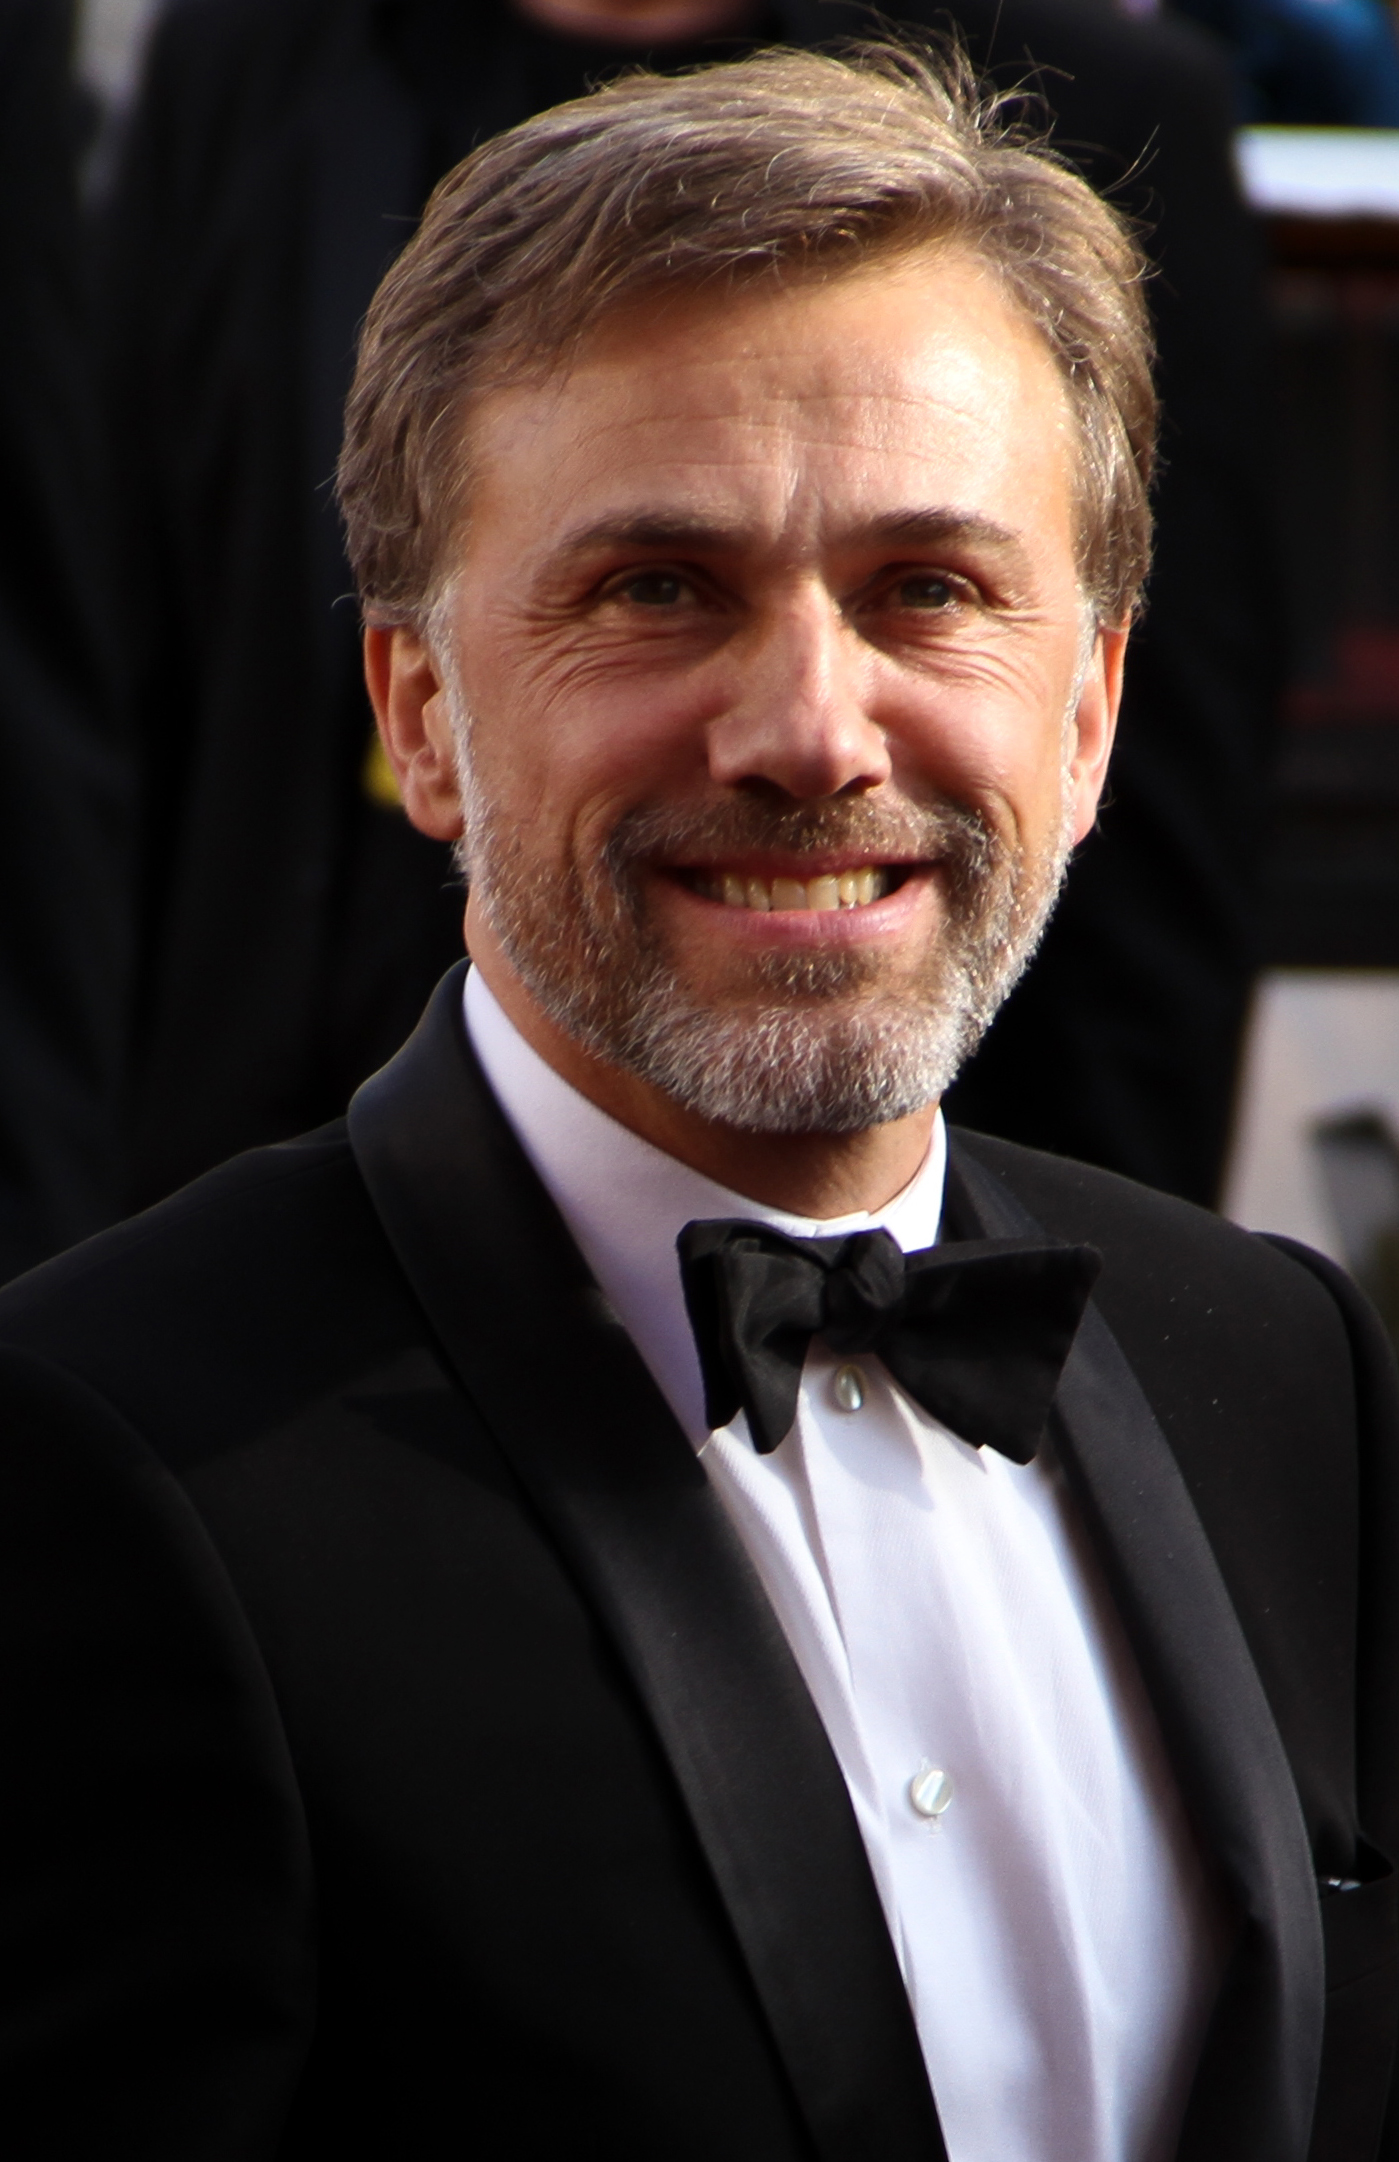 christoph waltz filmlerichristoph waltz young, christoph waltz instagram, christoph waltz tumblr, christoph waltz oscar, christoph waltz django, christoph waltz trump, christoph waltz spectre, christoph waltz samsung, christoph waltz quotes, christoph waltz prada, christoph waltz filme, christoph waltz speaking italian, christoph waltz kinopoisk, christoph waltz trololo lolo, christoph waltz hateful eight, christoph waltz filmography, christoph waltz vk, christoph waltz height, christoph waltz filmleri, christoph waltz best scene